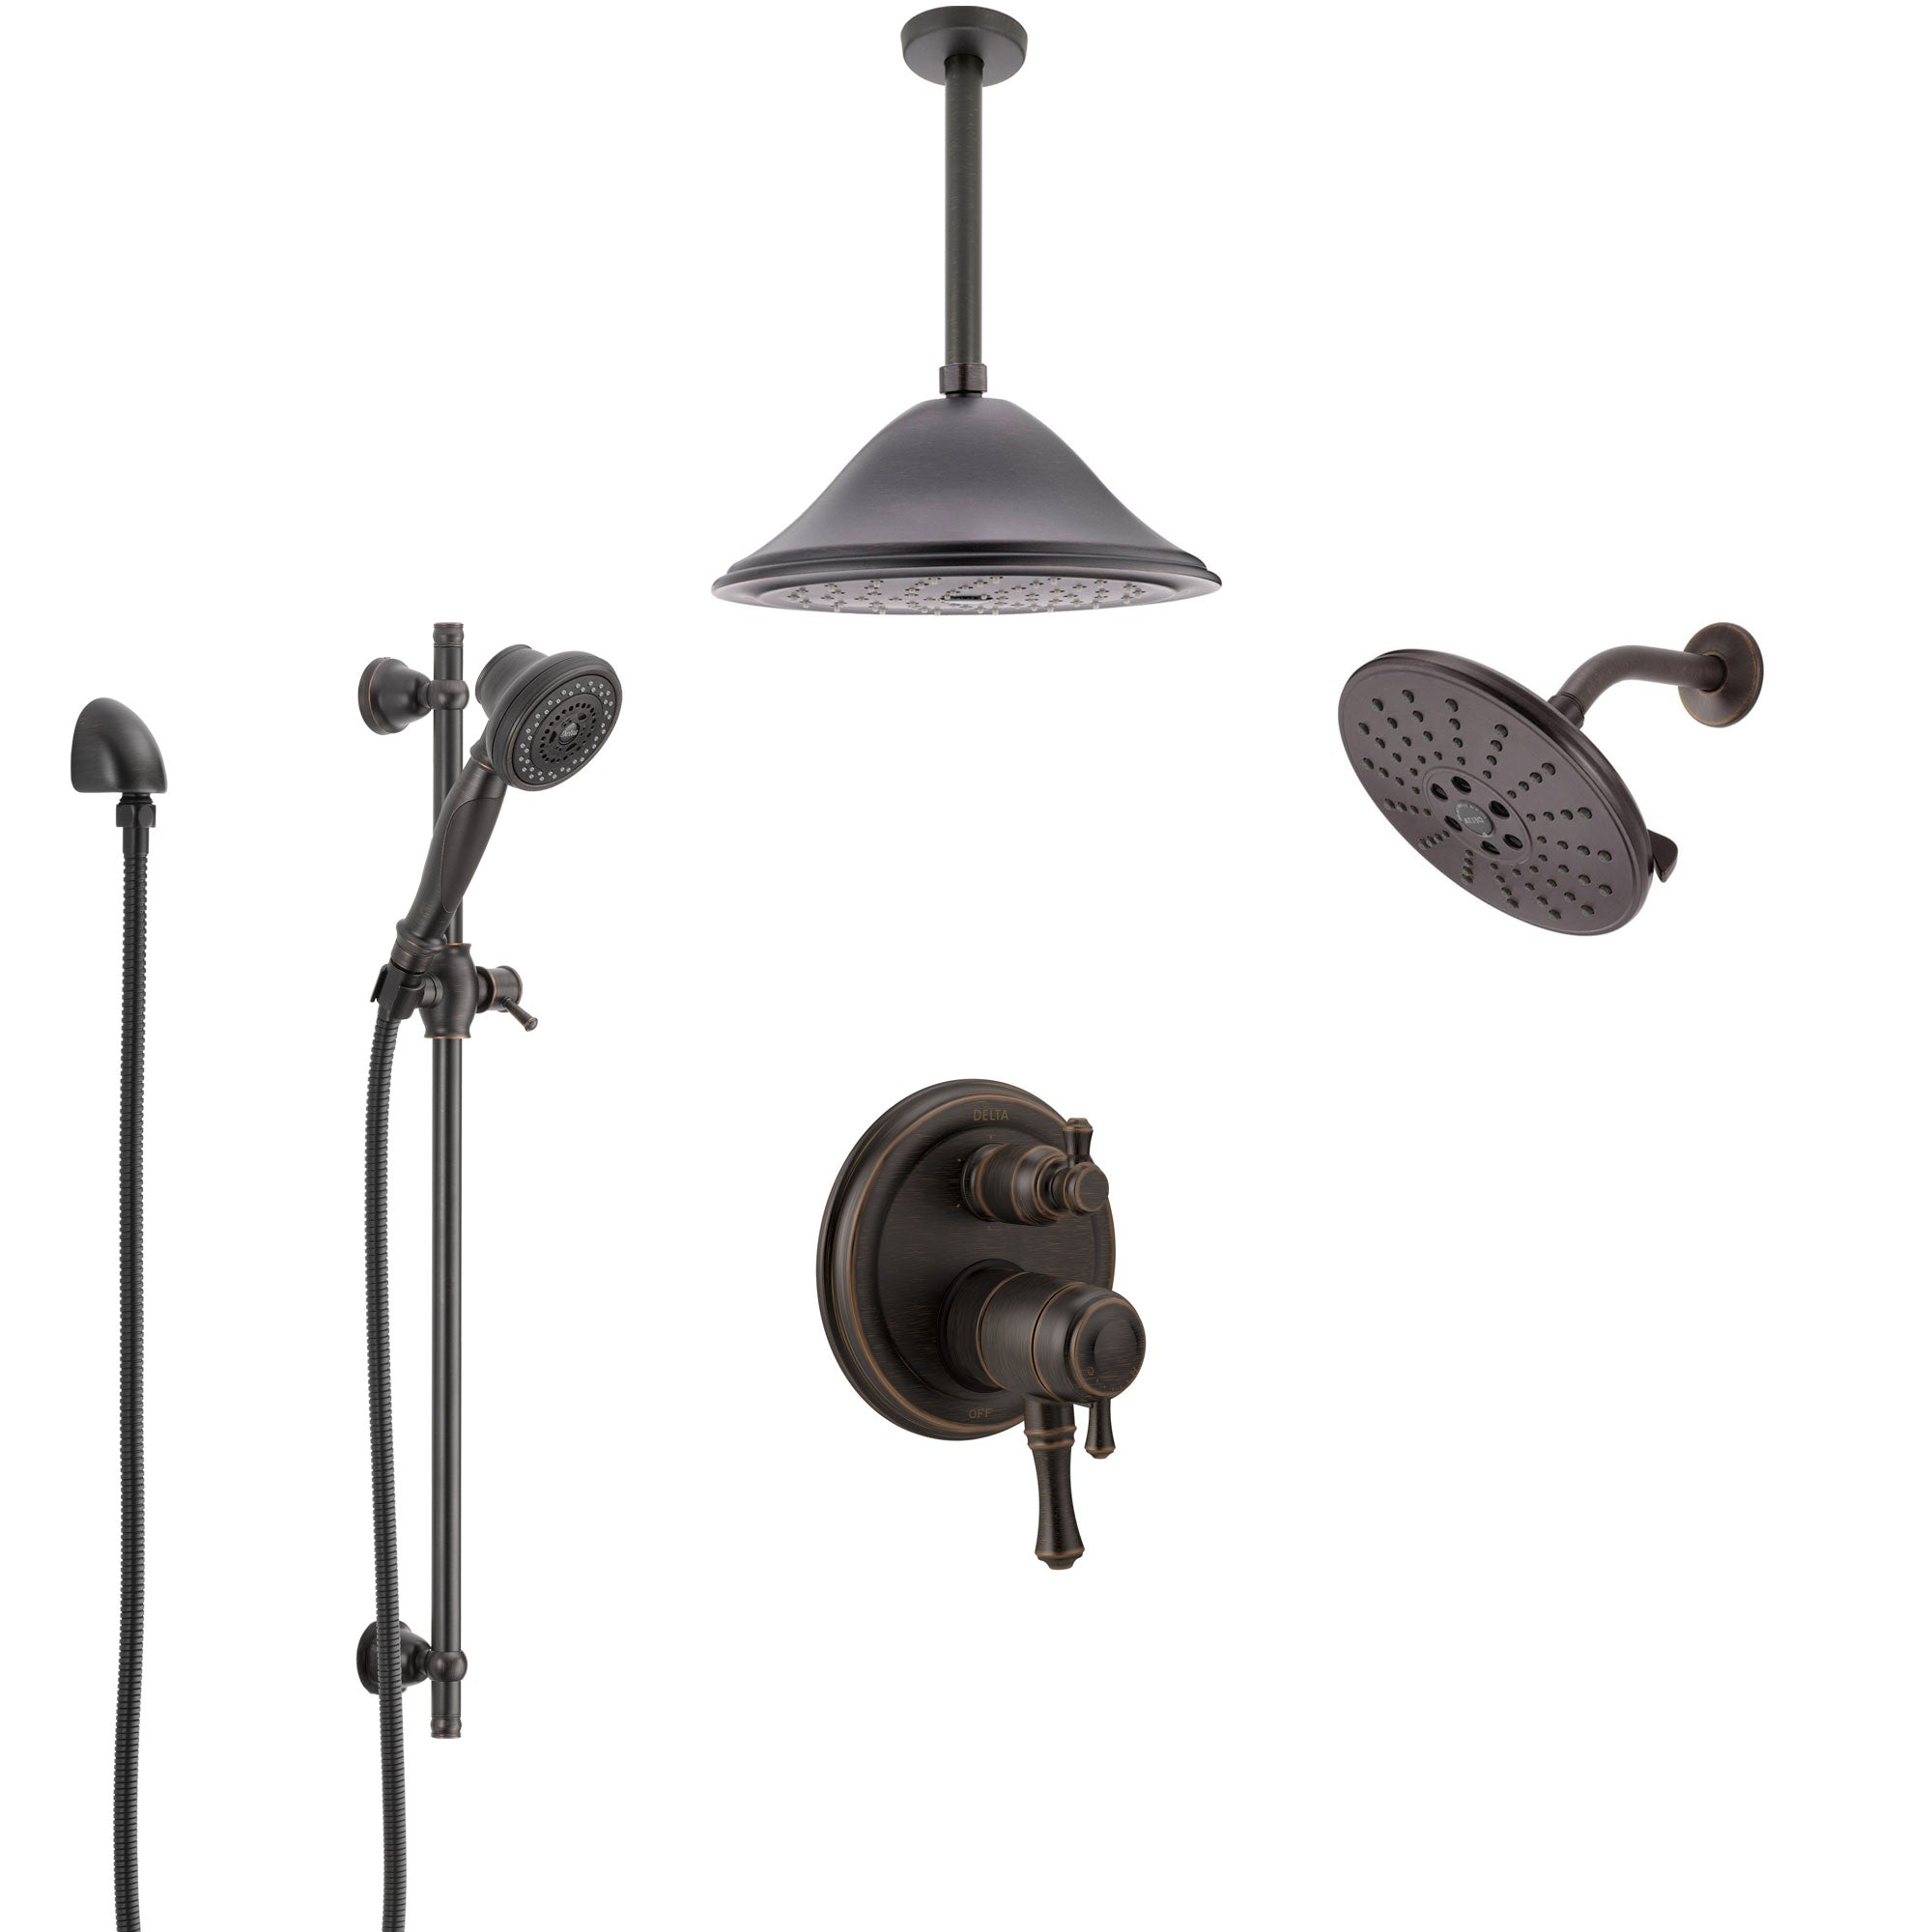 Delta Cassidy Venetian Bronze Shower System with Dual Control Handle, Integrated Diverter, Showerhead, Ceiling Showerhead, and Hand Shower SS27997RB10